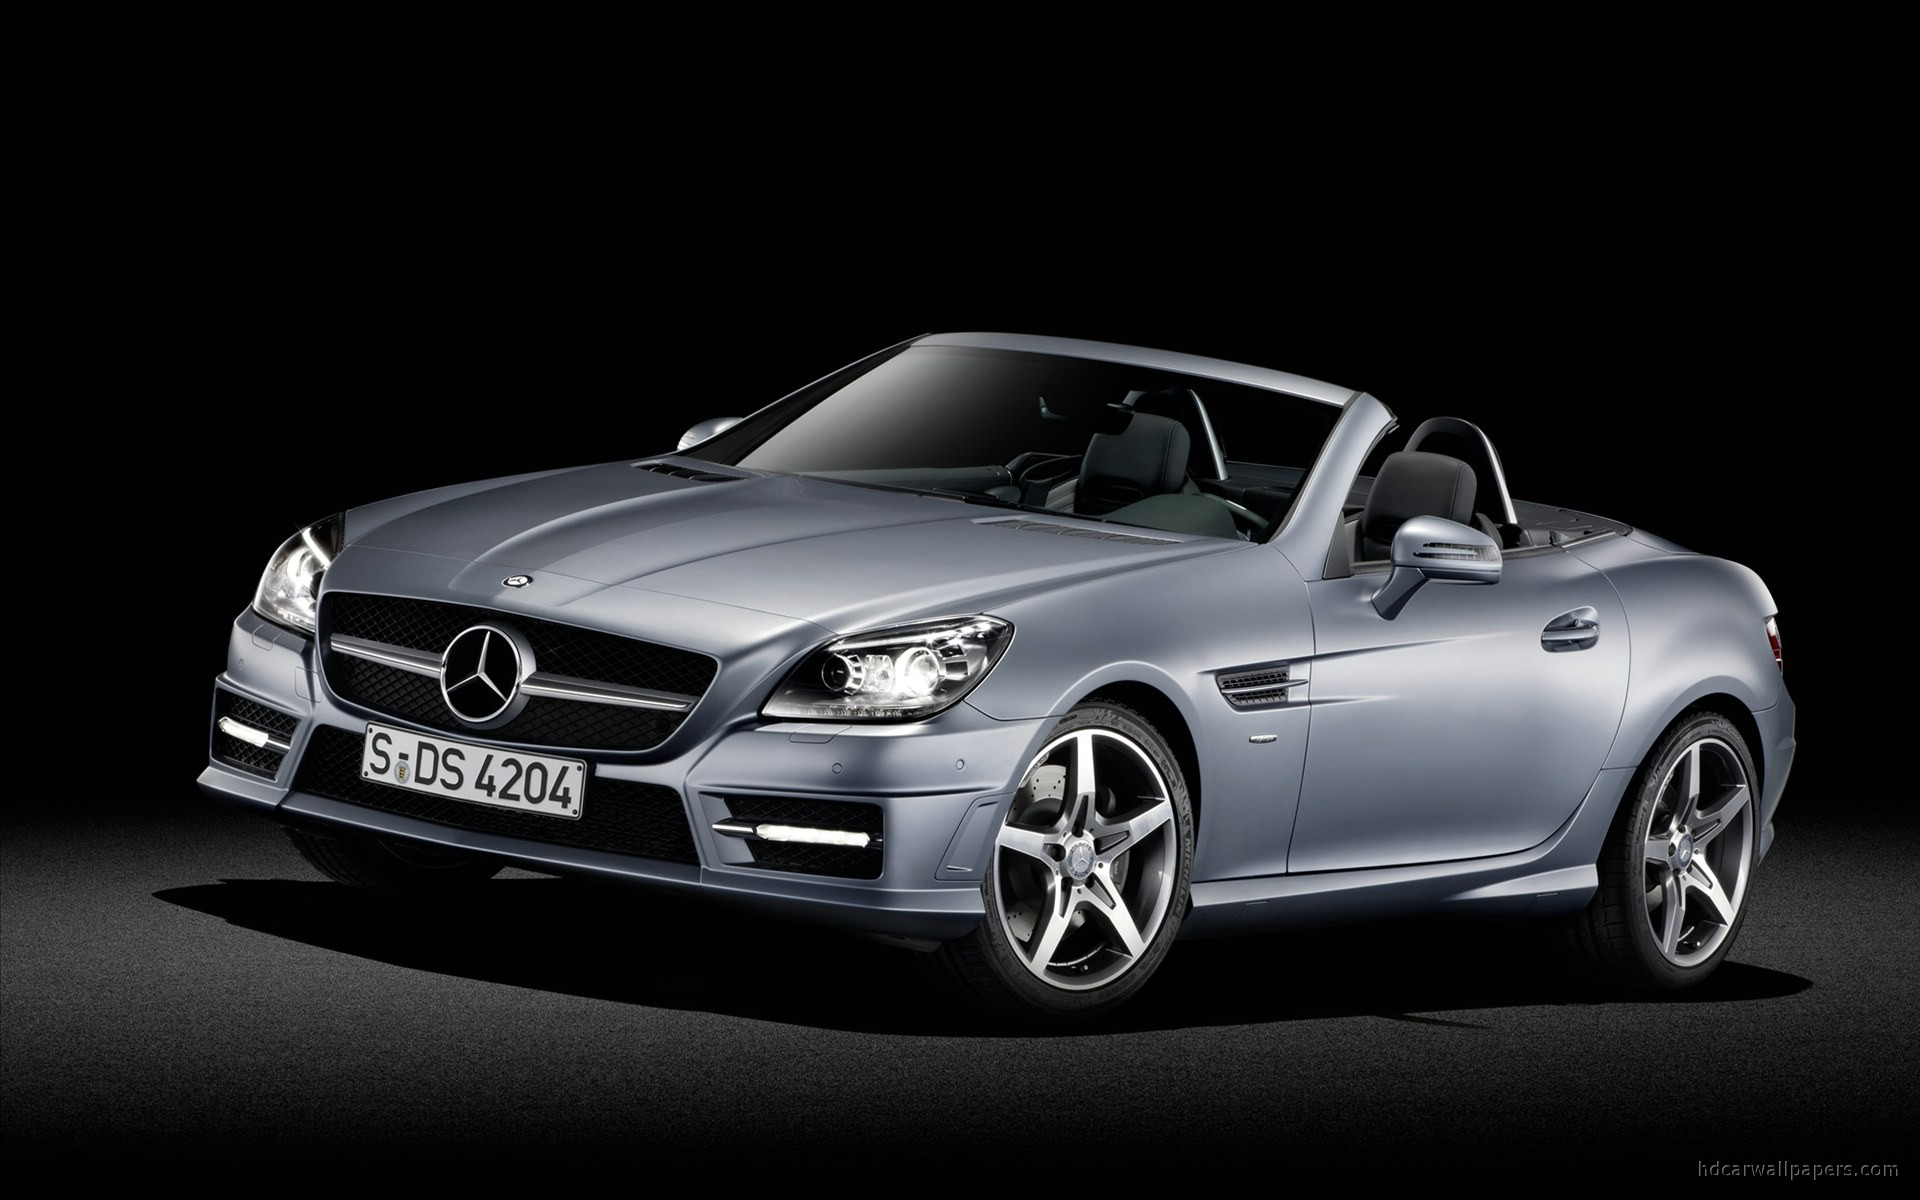 2012 mercedes benz slk roadster 3 wallpaper hd car. Black Bedroom Furniture Sets. Home Design Ideas